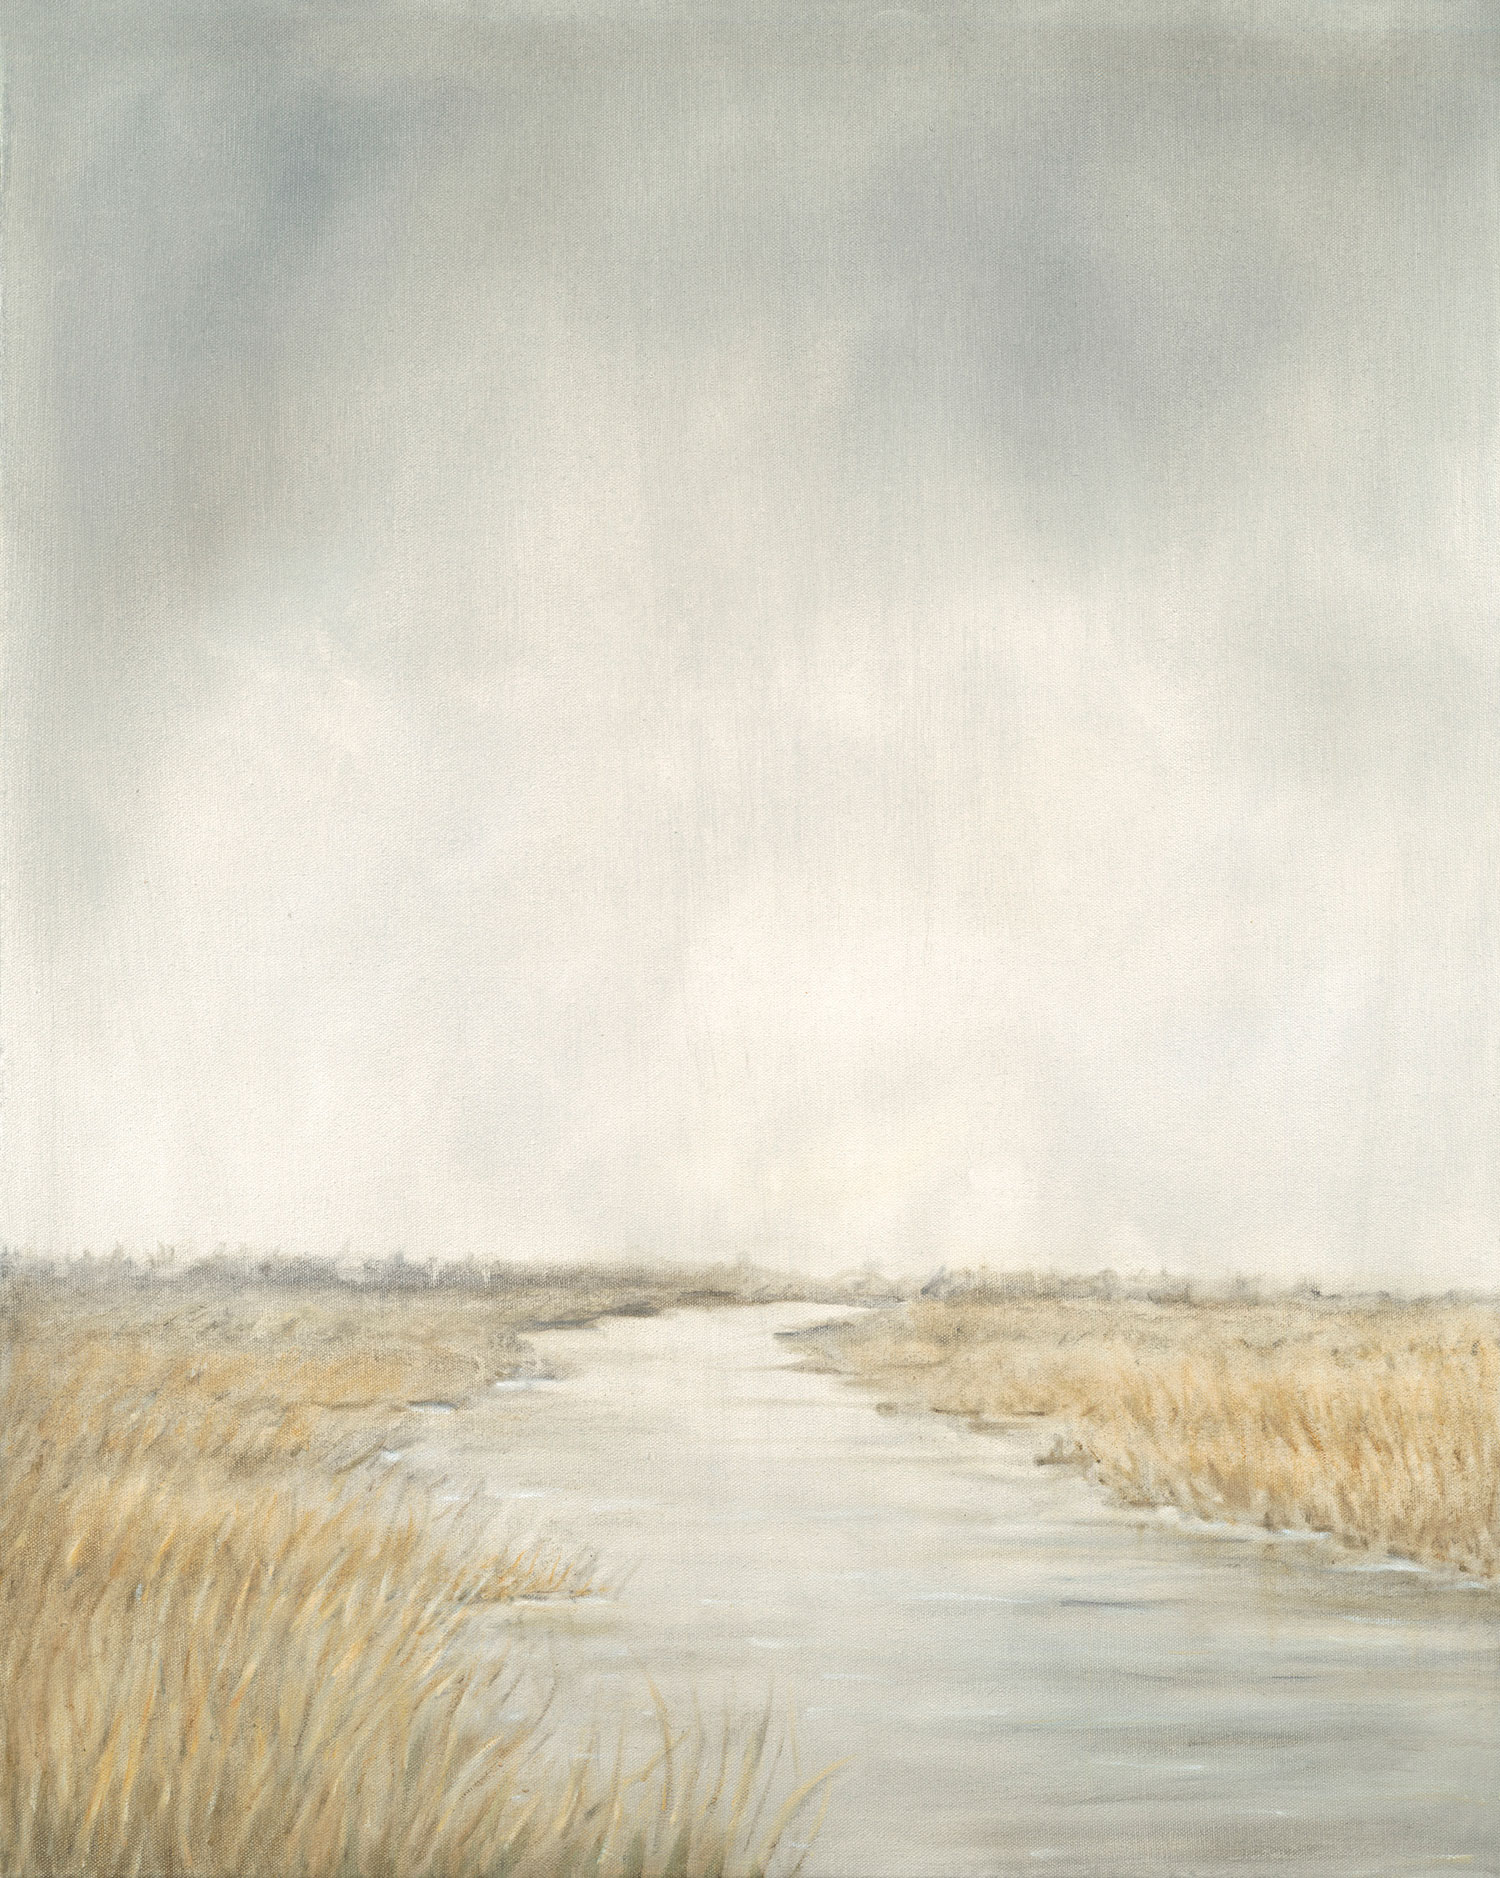 Reedbed and River